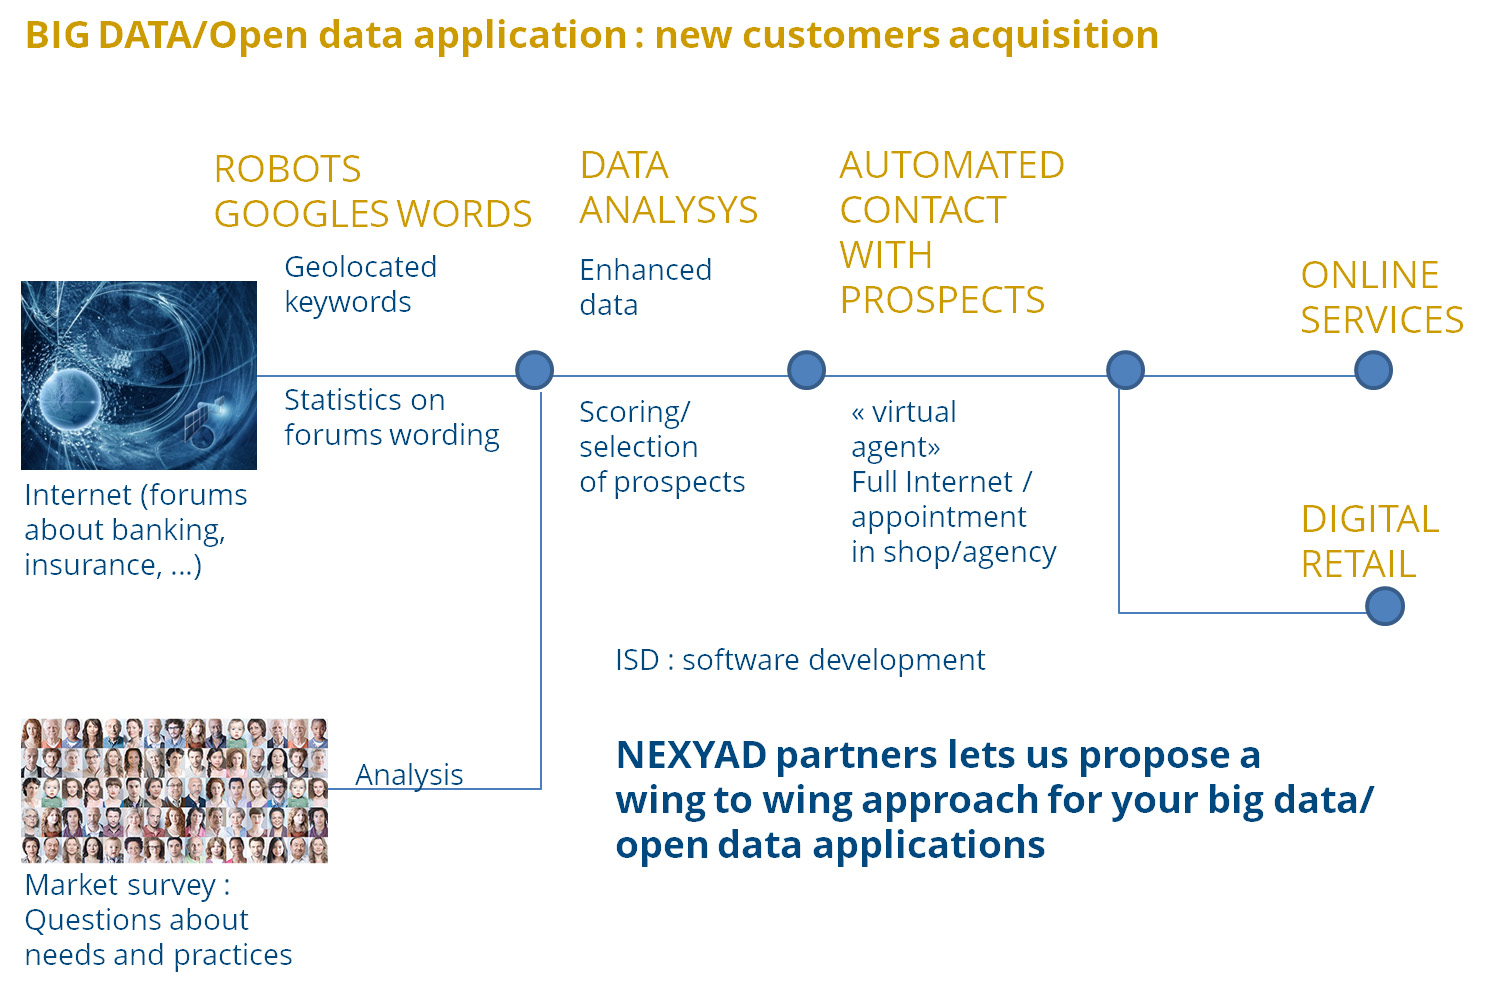 Big Data and Open Data for new customers acquisition (bank